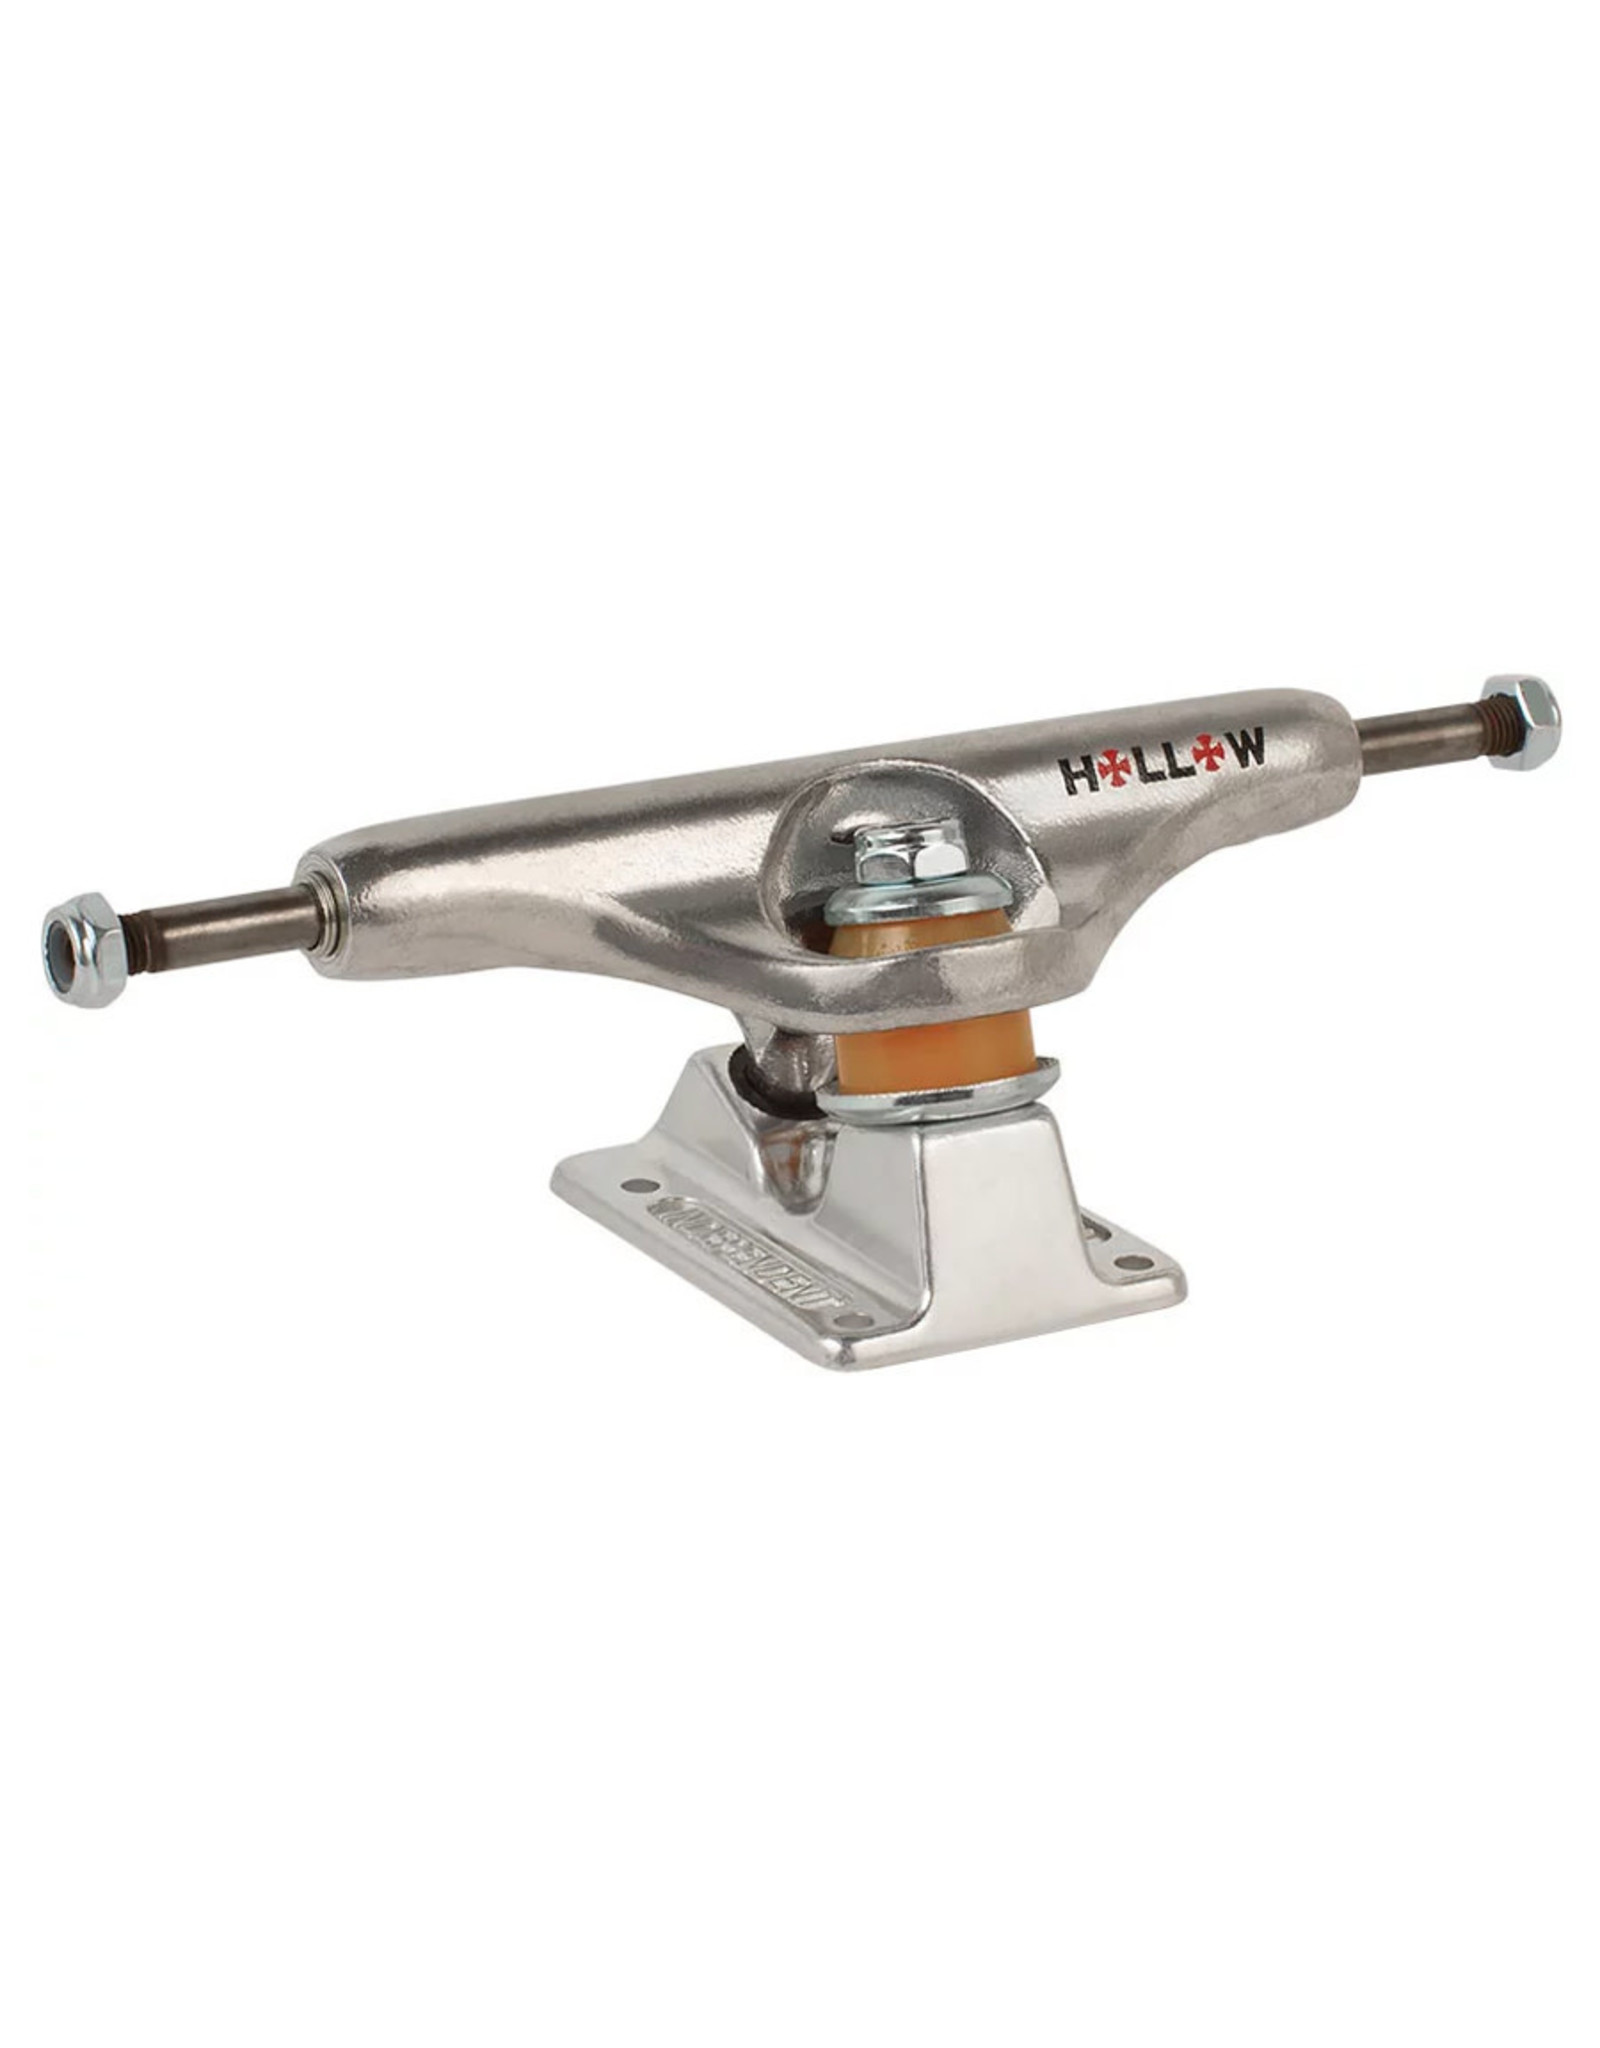 Independent Independent Trucks 144 Stage 11 Hollow Silver (Sold in Pair)